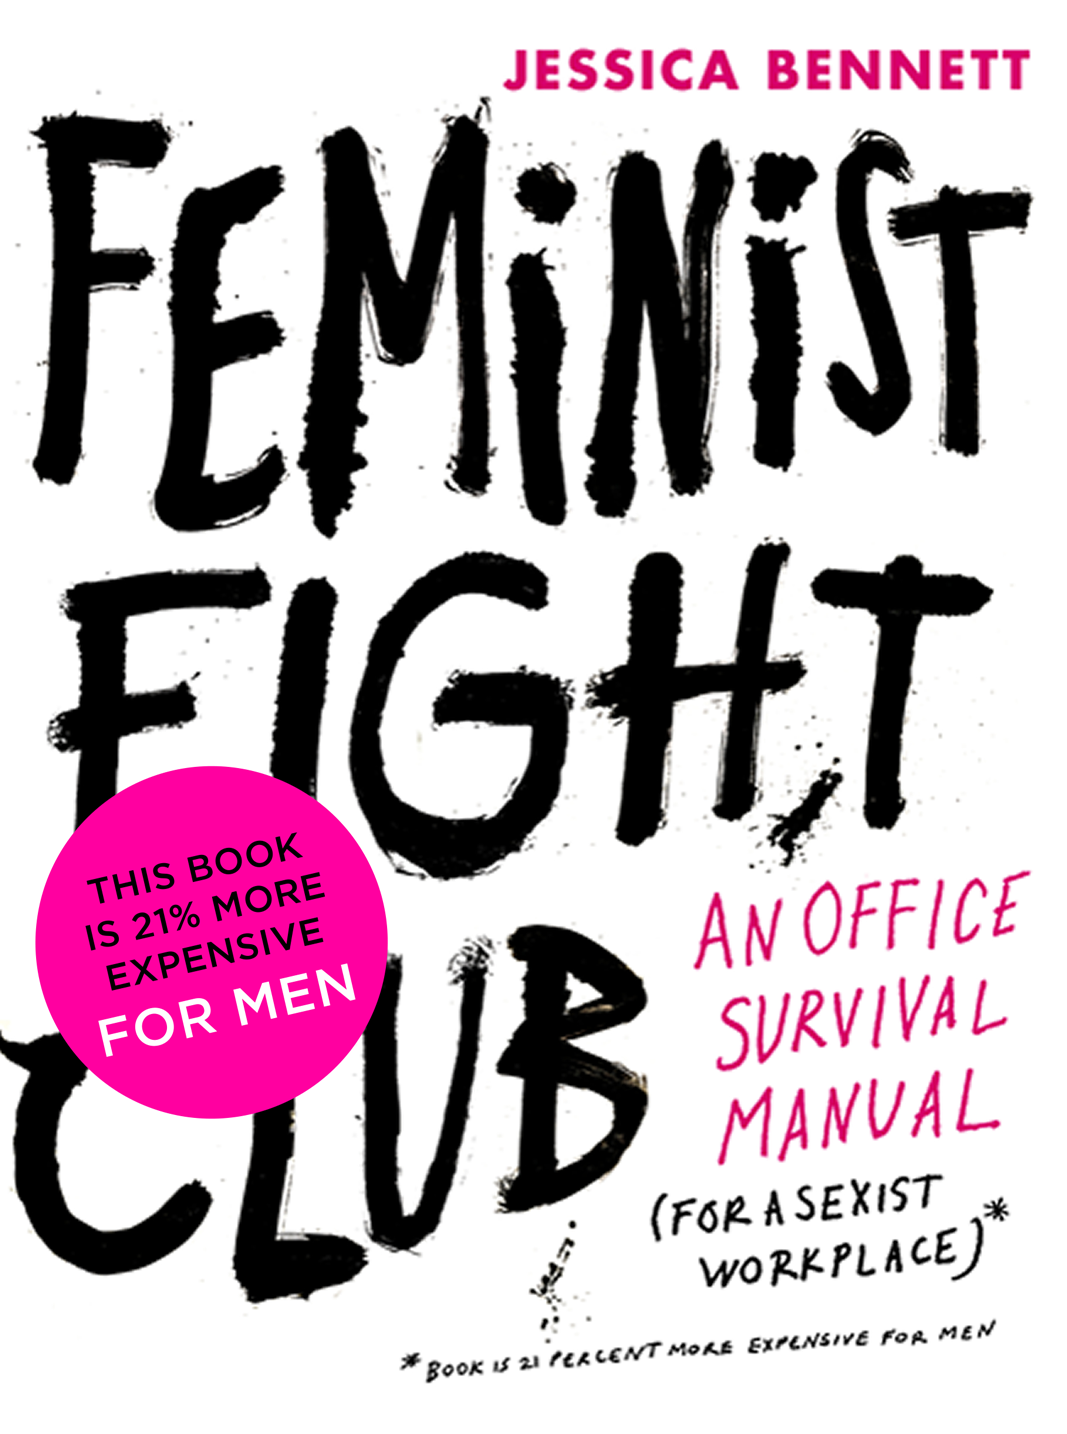 """<p><strong><em>Feminist Fight Club</em></strong></p> <p>By Jessica Bennett</p> <p>""""If this were an equal world, this book wouldn't have to exist,"""" says the author of <em>Feminist Fight Club</em>. Journalist Jessica Bennett had had enough of micro-aggressions, unconscious bias, colleagues 'manterrupting' her in meetings and men 'bro-propriating' her ideas, so she created this seriously useful guide for battling workplace sexism.</p> <p>Endorsed by Facebook COO and <em>Lean In</em> author, Sheryl Sandberg, <em>Feminist Fight Club</em> is a perfect gift for the friend who just needs a little push to start standing up for herself.</p>"""